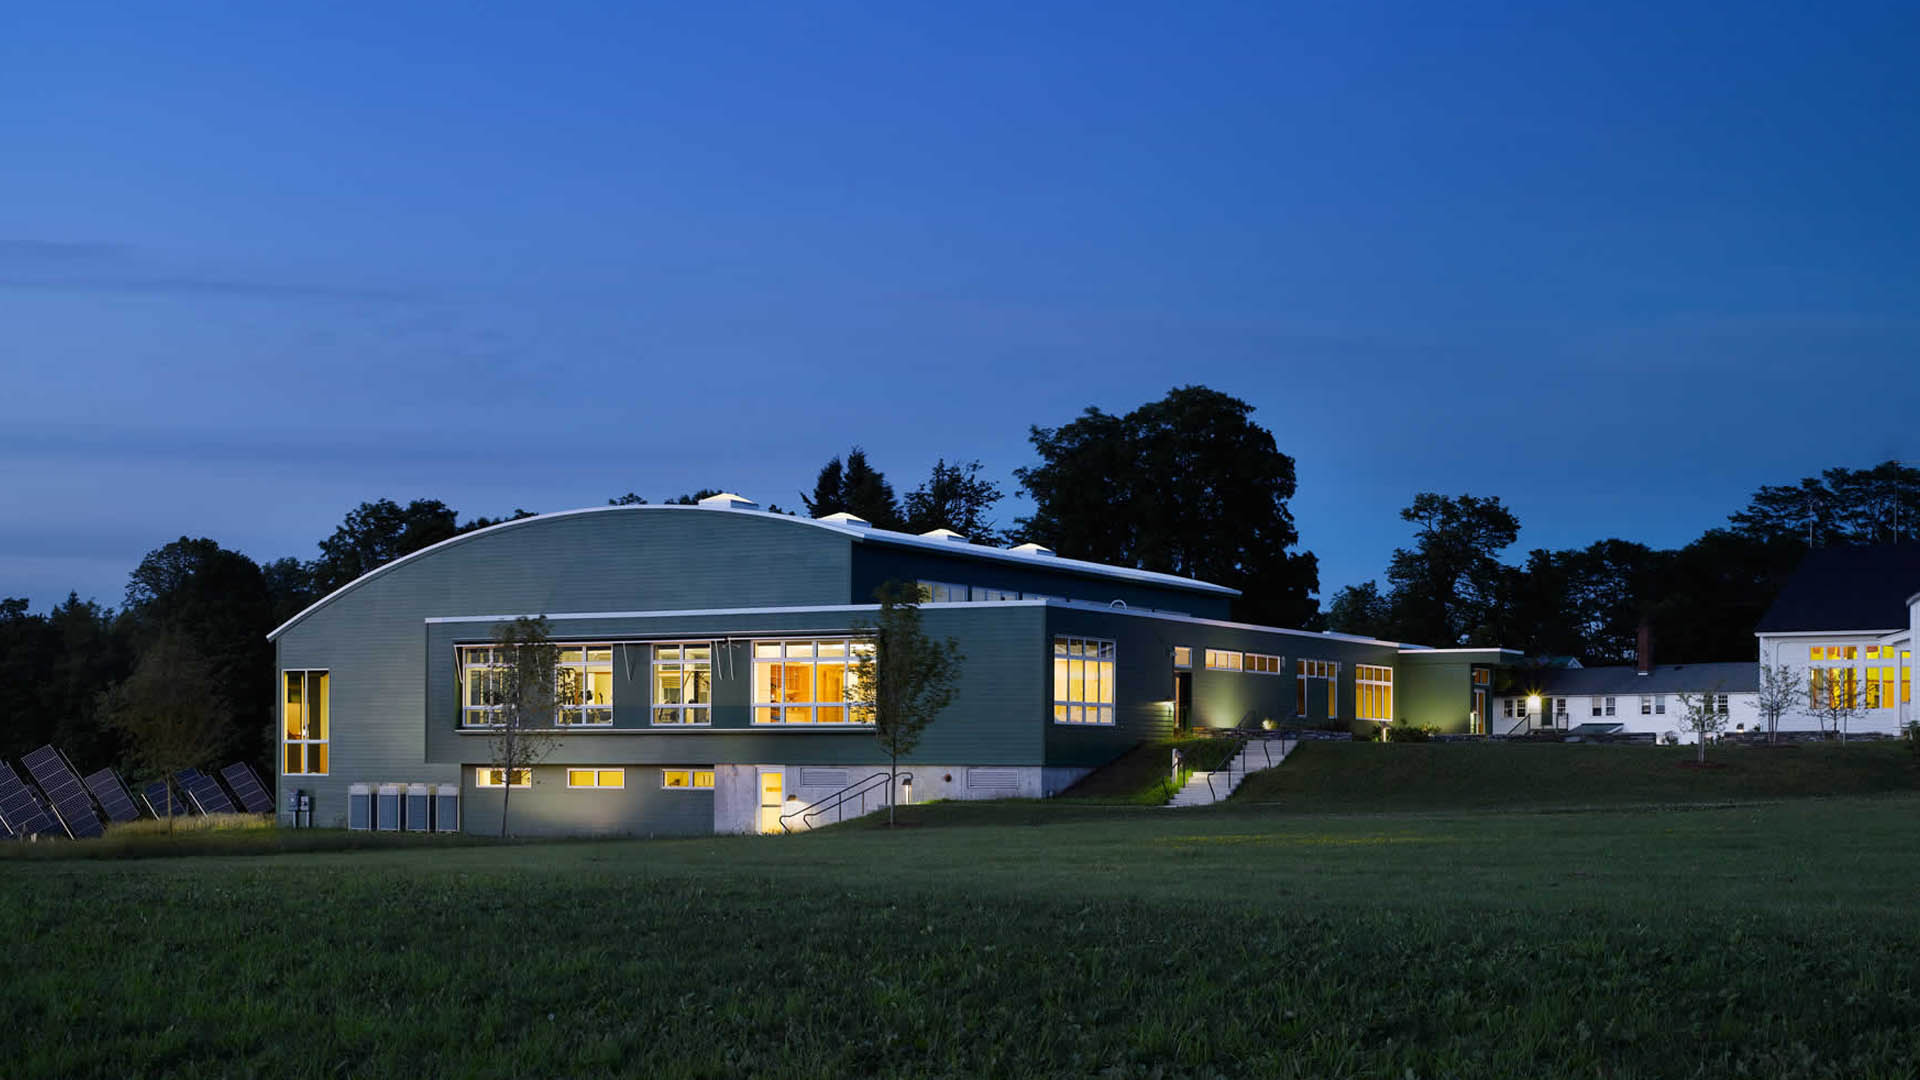 Architecture and design of The Putney School Field House - Putney, Vermont